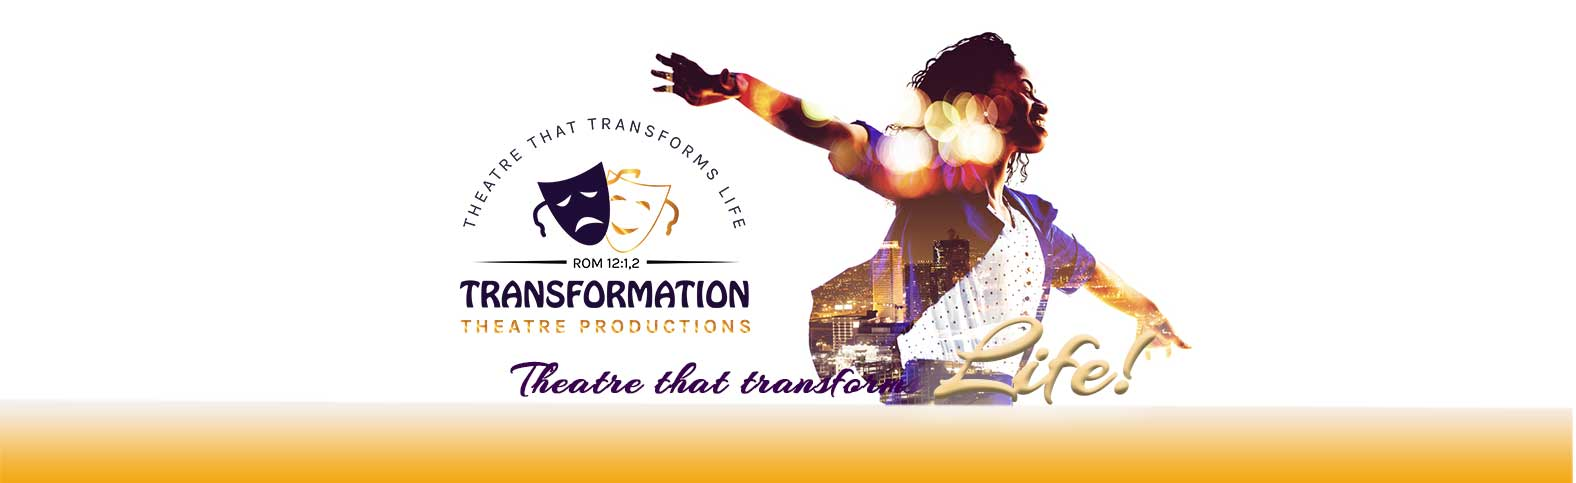 Transformation Theatre Productions – Theatre That Transforms Life